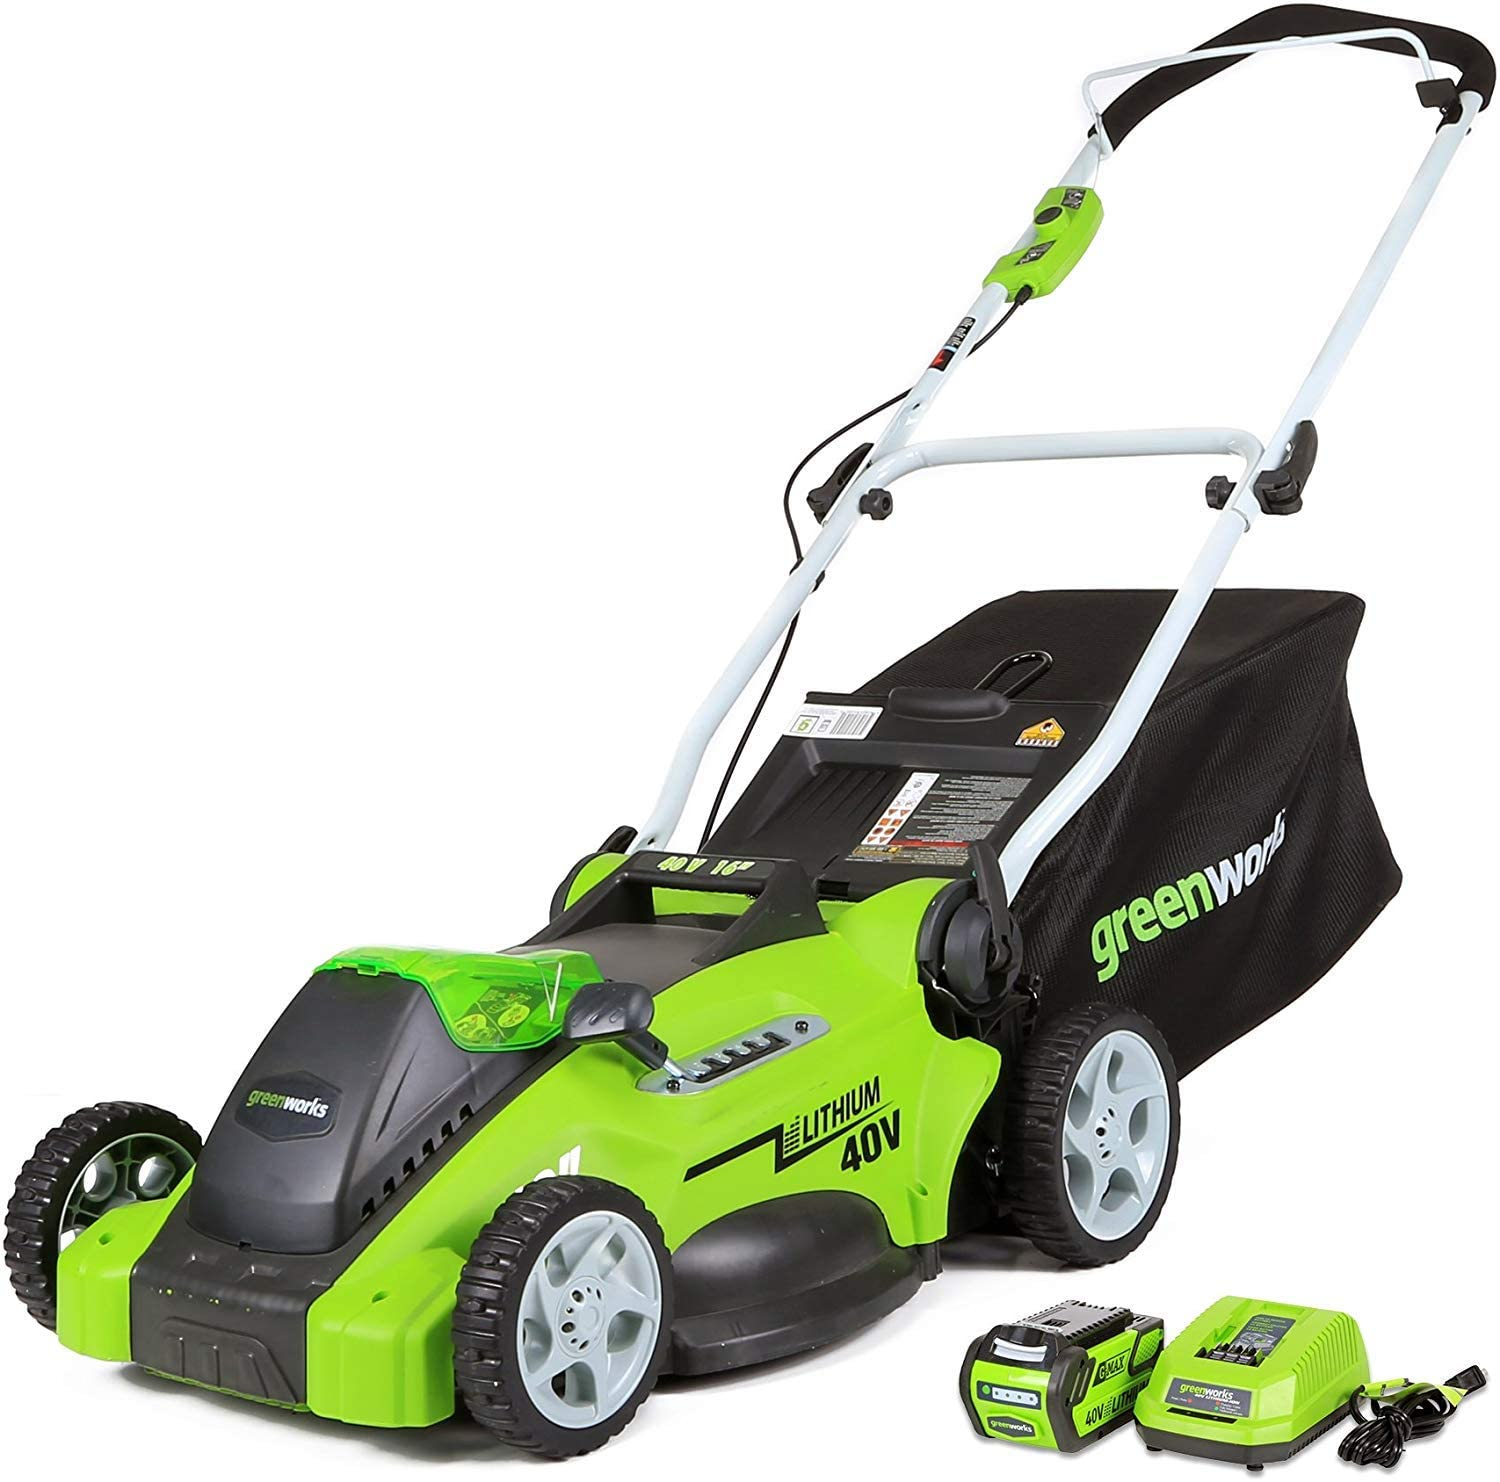 Review of Greenworks G-MAX 40V 16'' Cordless Lawn Mower with 4Ah Battery - 25322 model